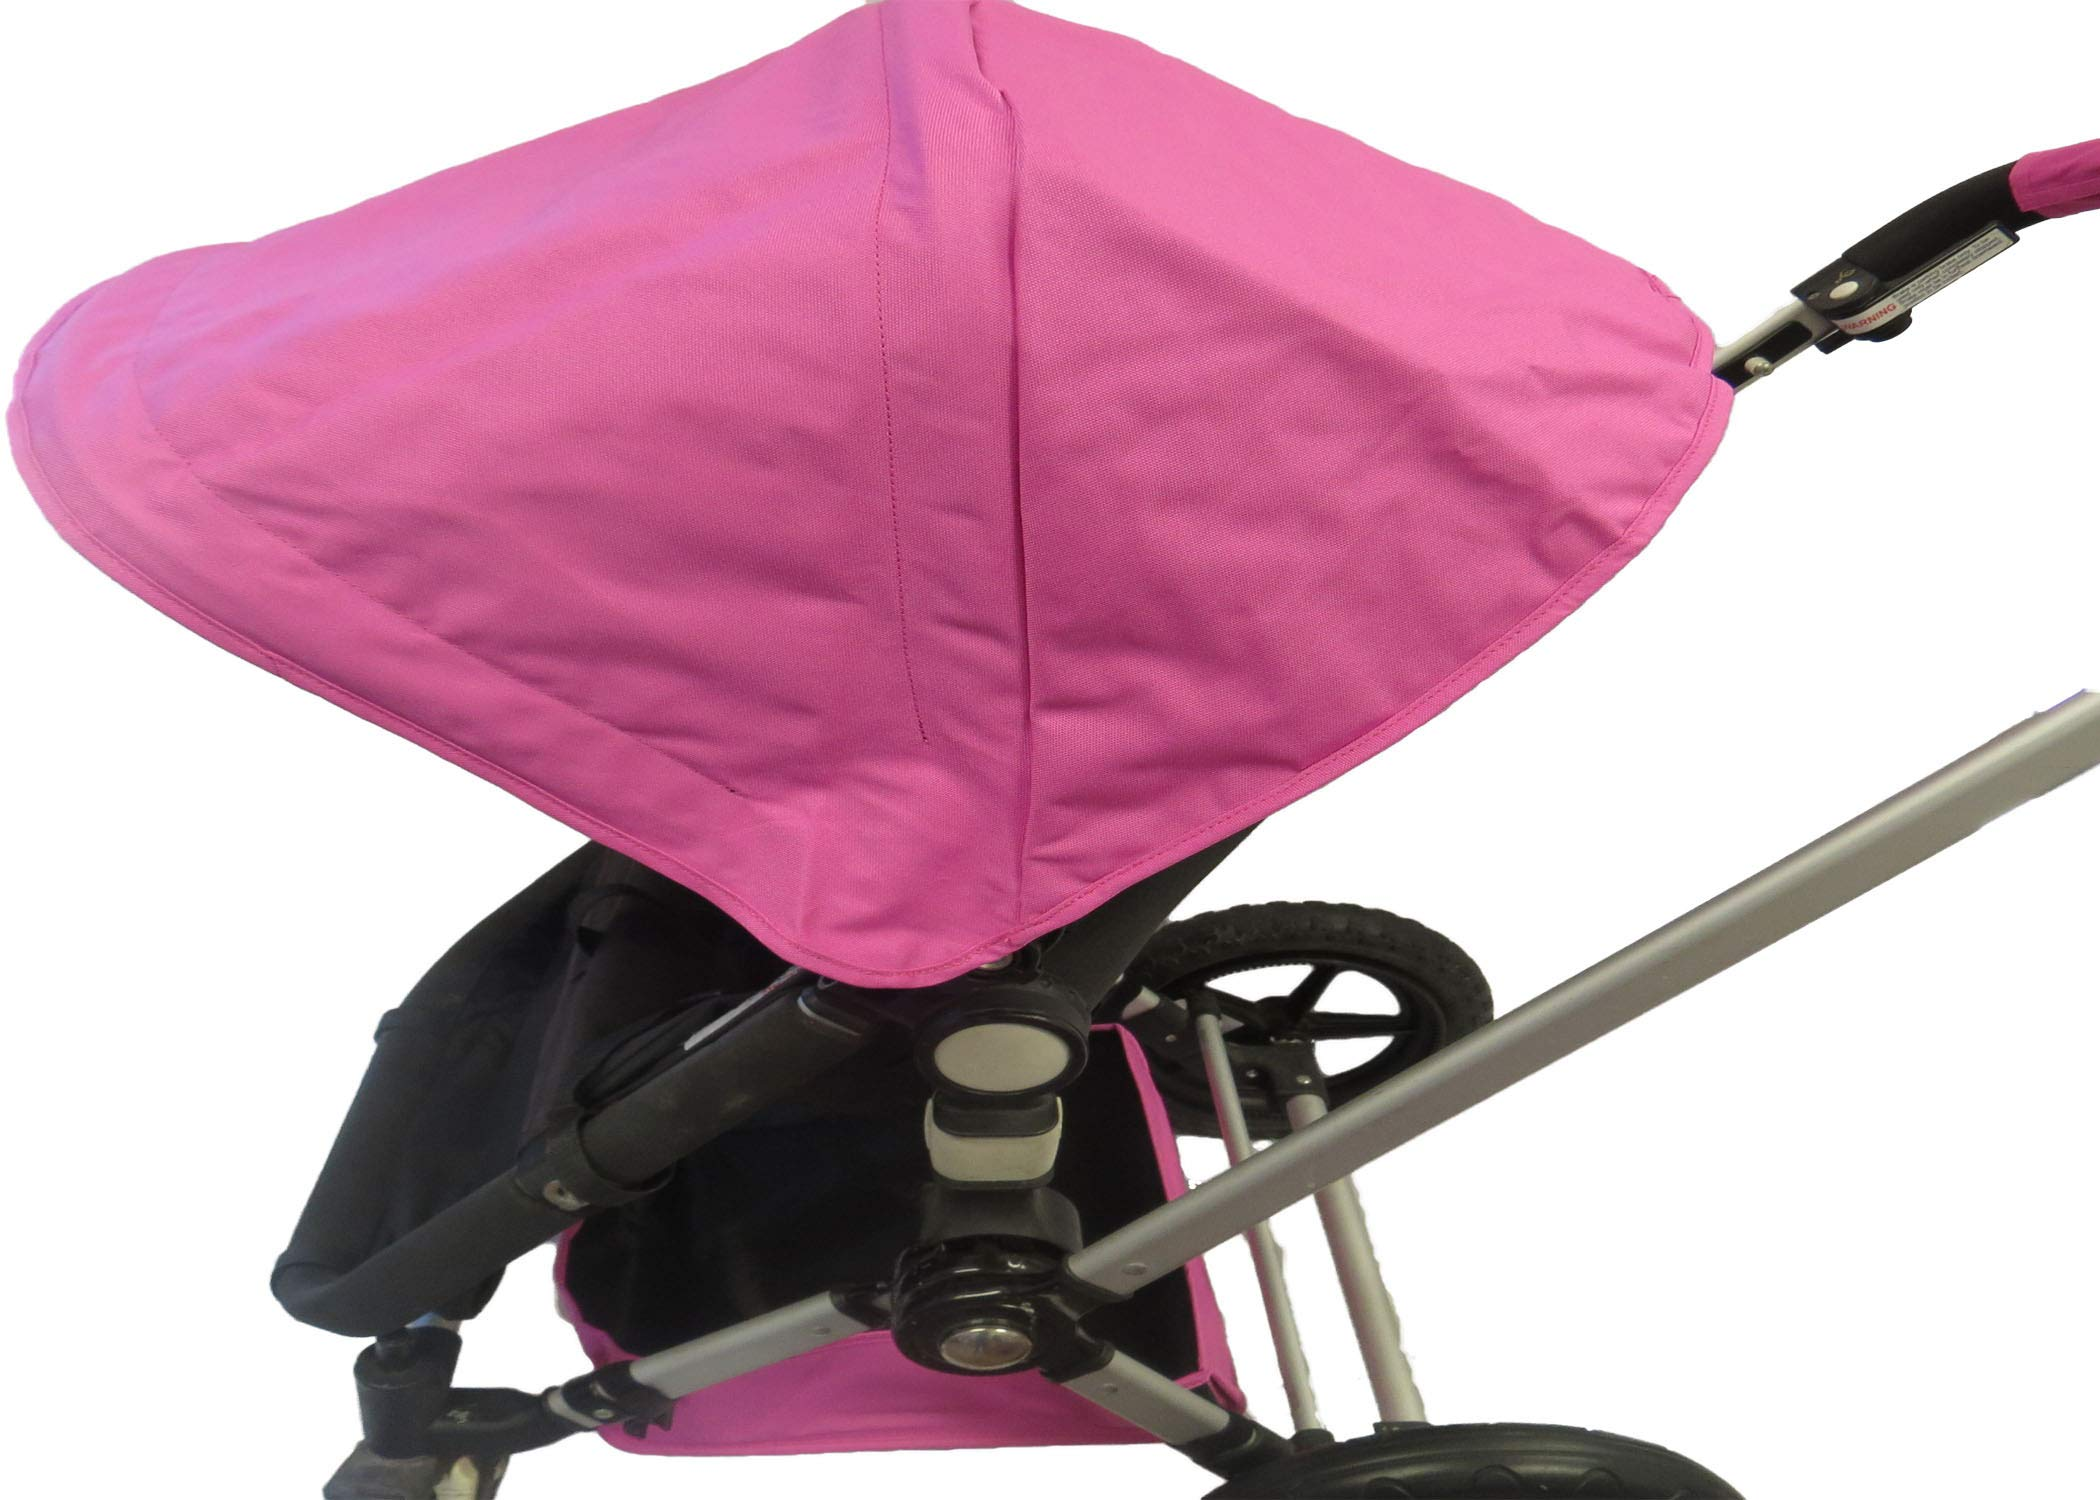 Pink Sun Shade Canopy with Wires and Under Seat Storage Basket Plus Free Handle Bar Covers for Bugaboo Cameleon 1, 2, 3, Frog Baby Child Strollers